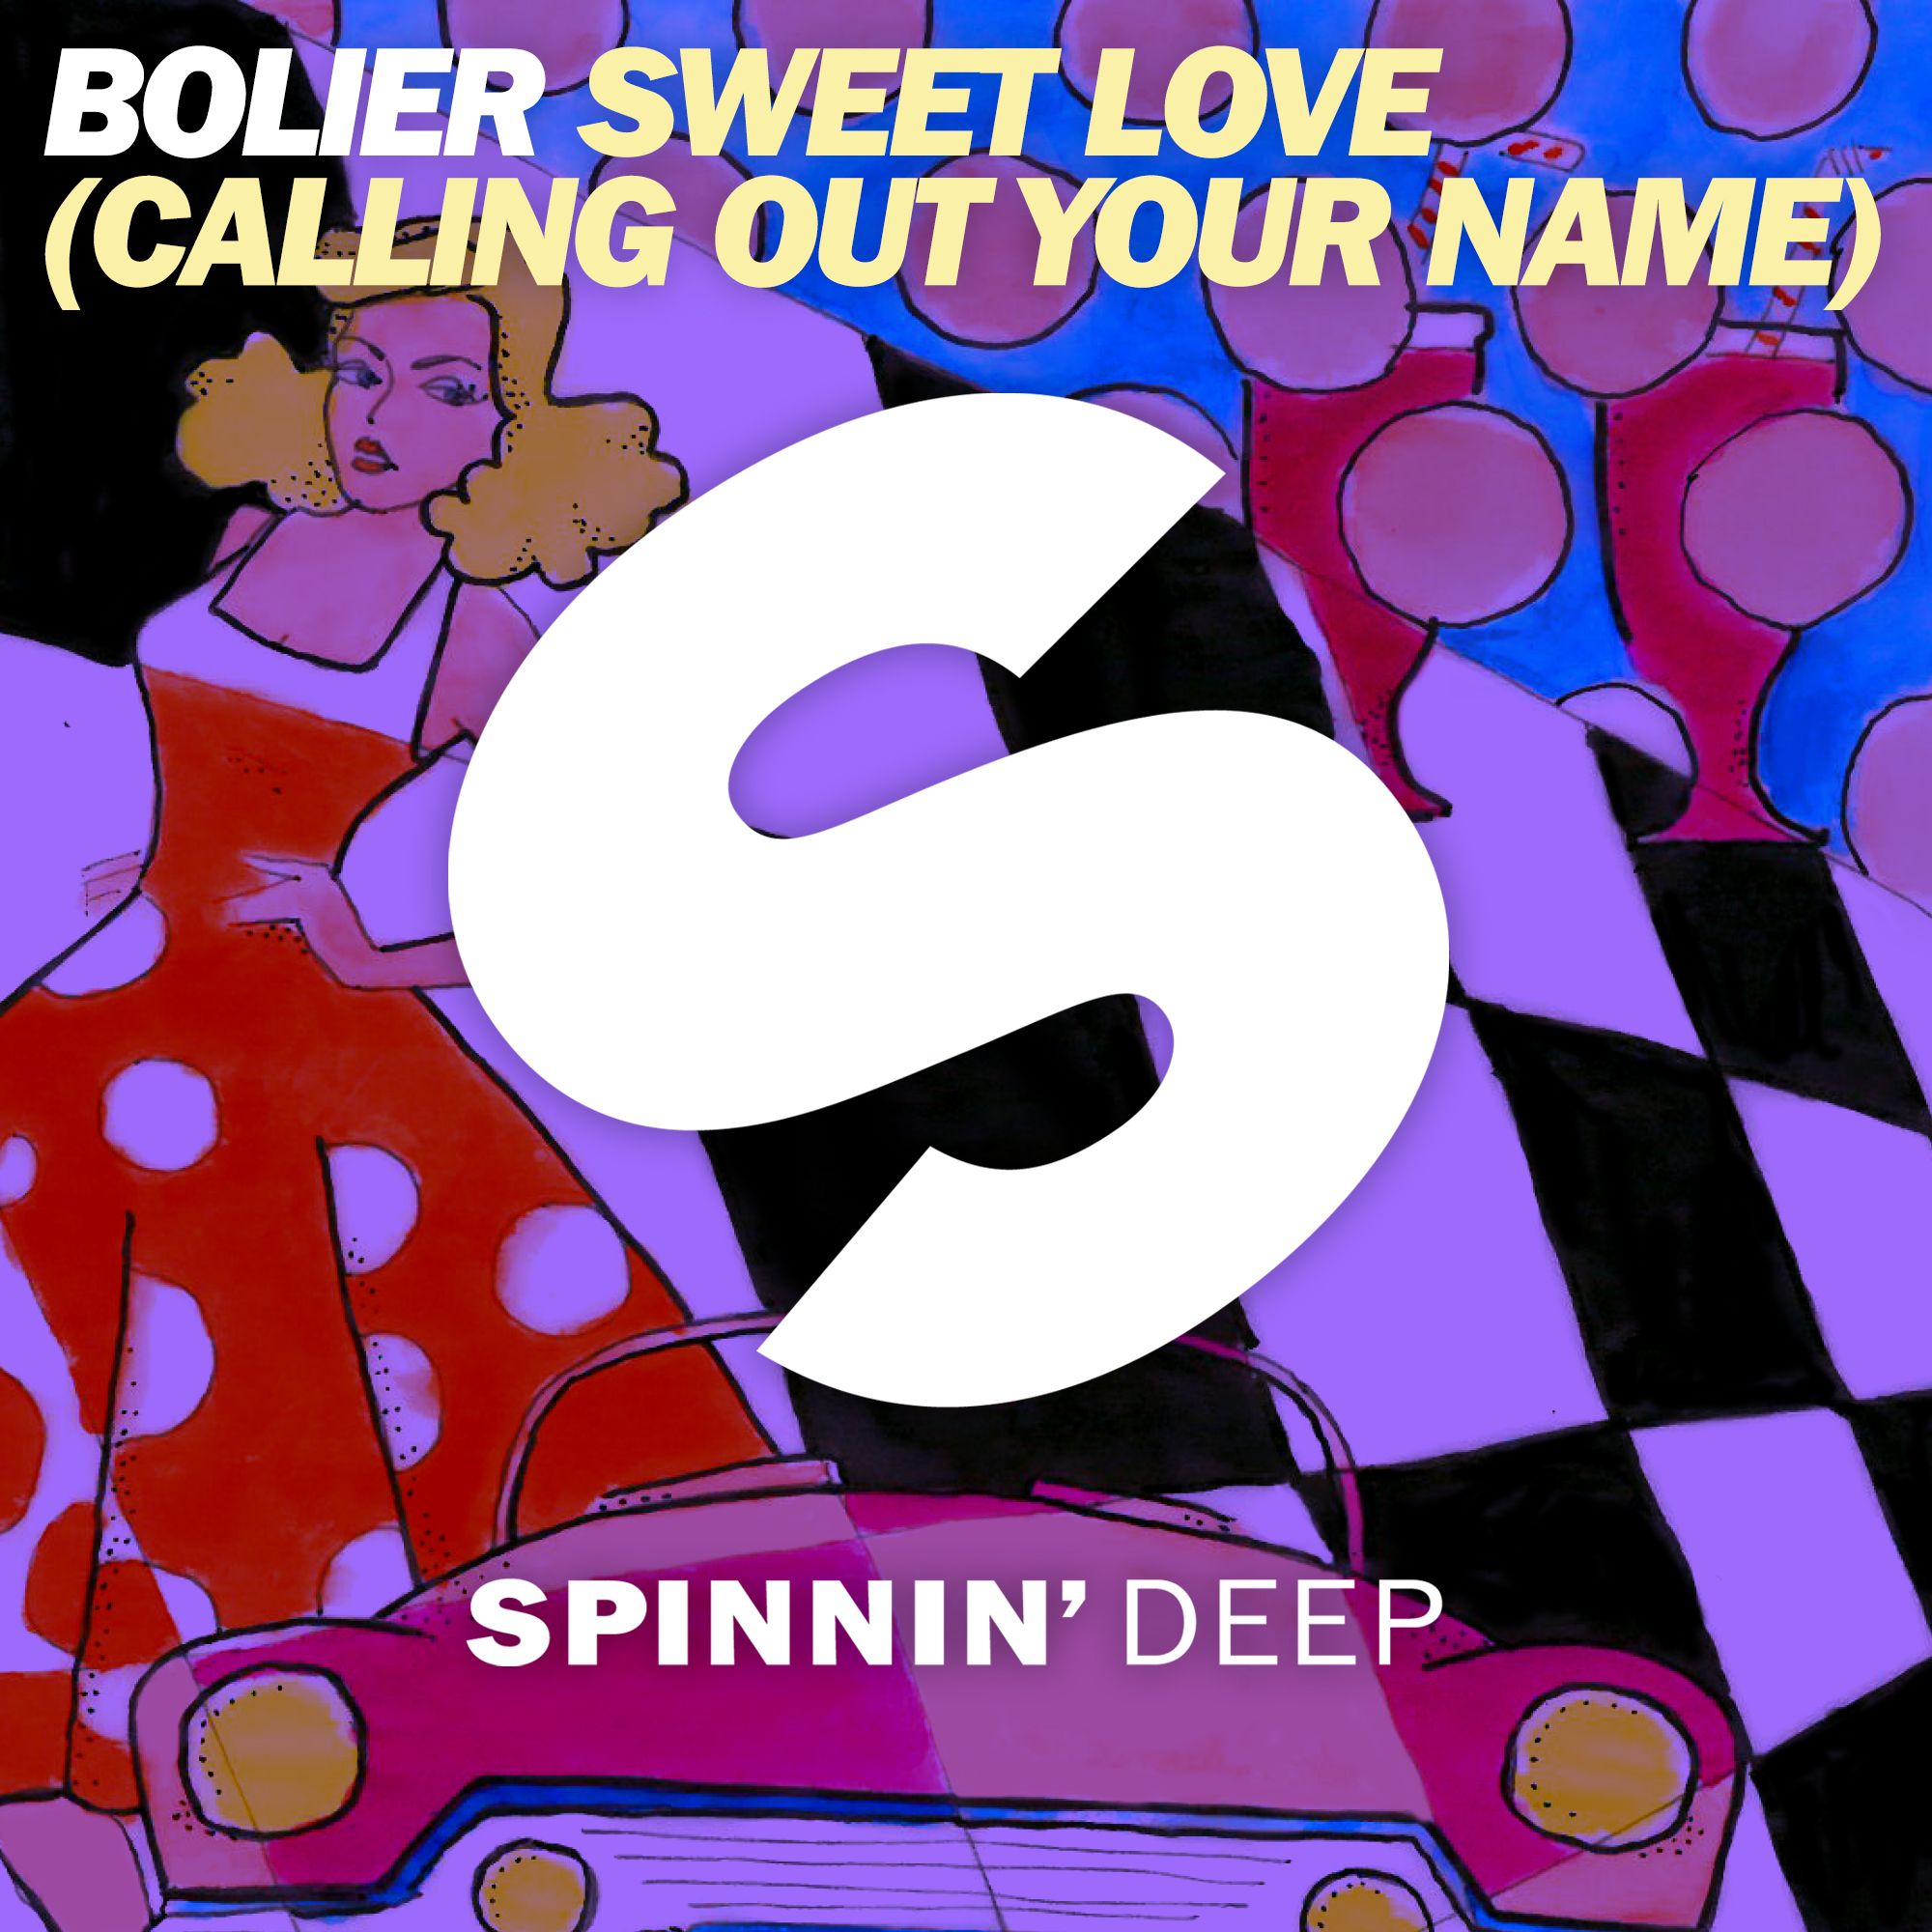 spdeep_bolier_-_sweet_love_calling_out_your_name.jpg